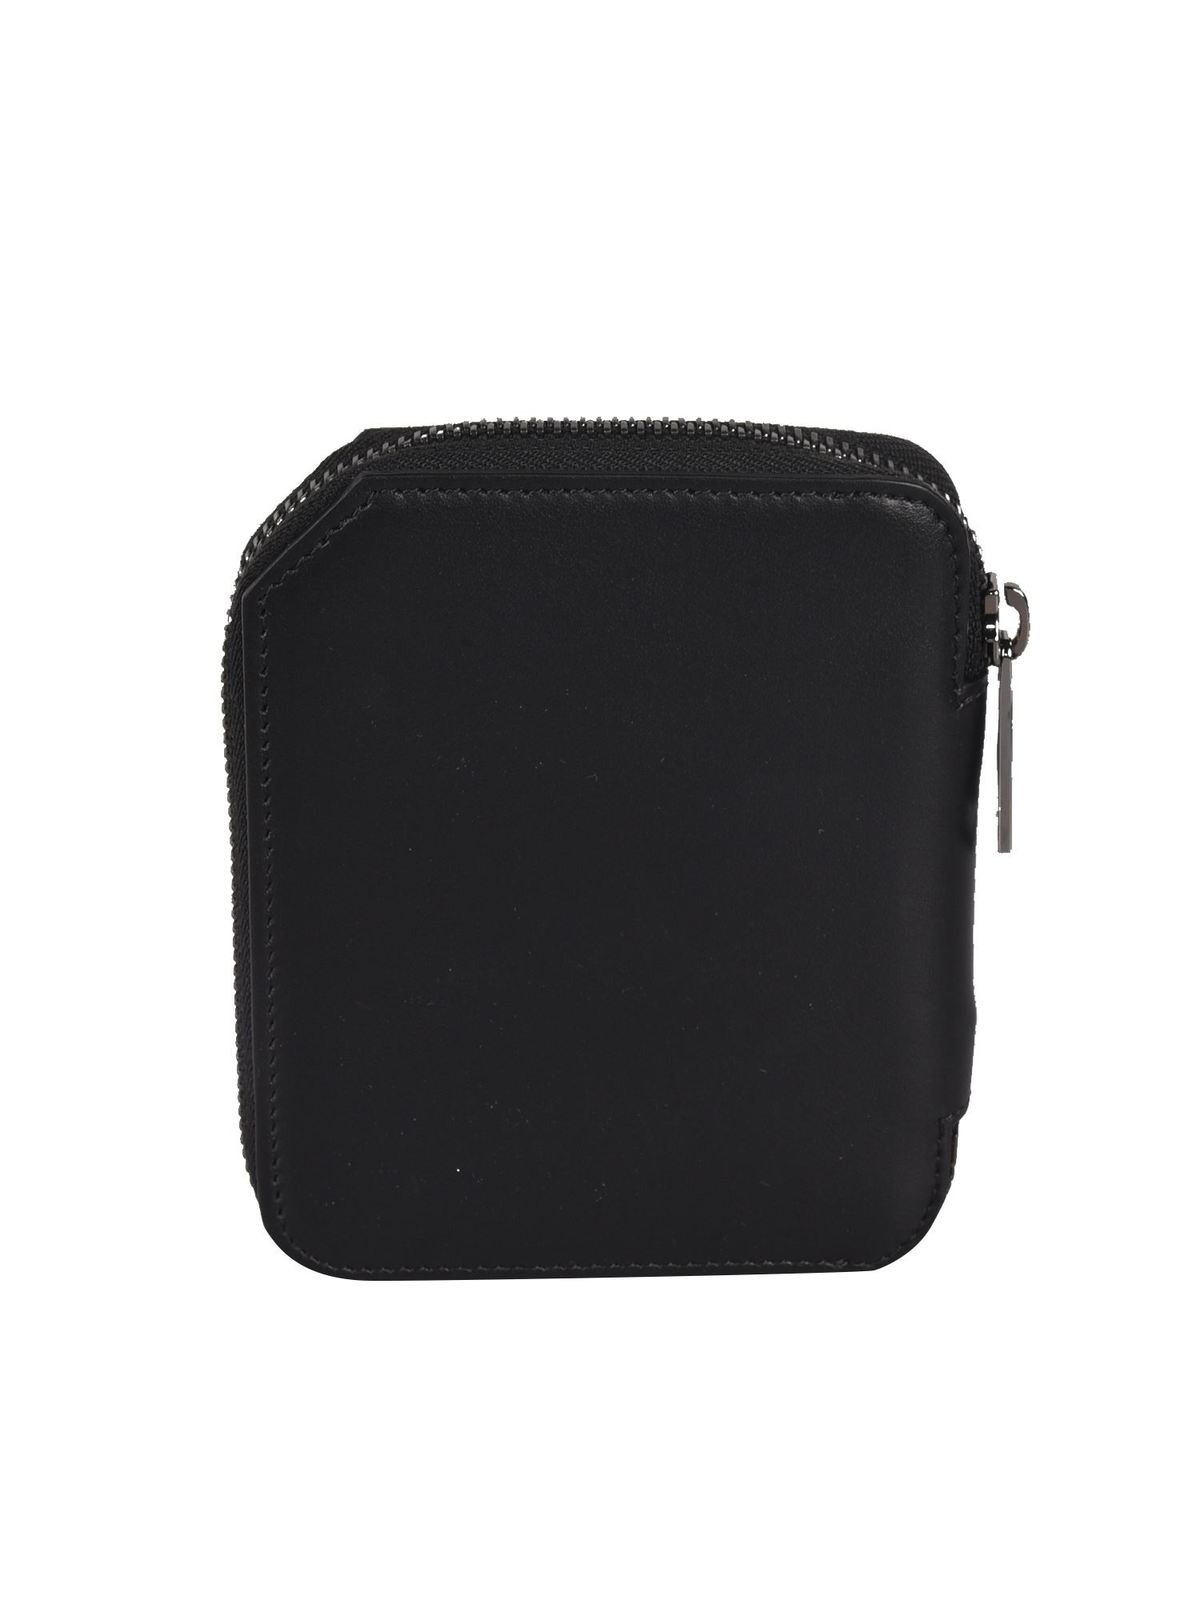 Givenchy LOGO WALLET IN BLACK